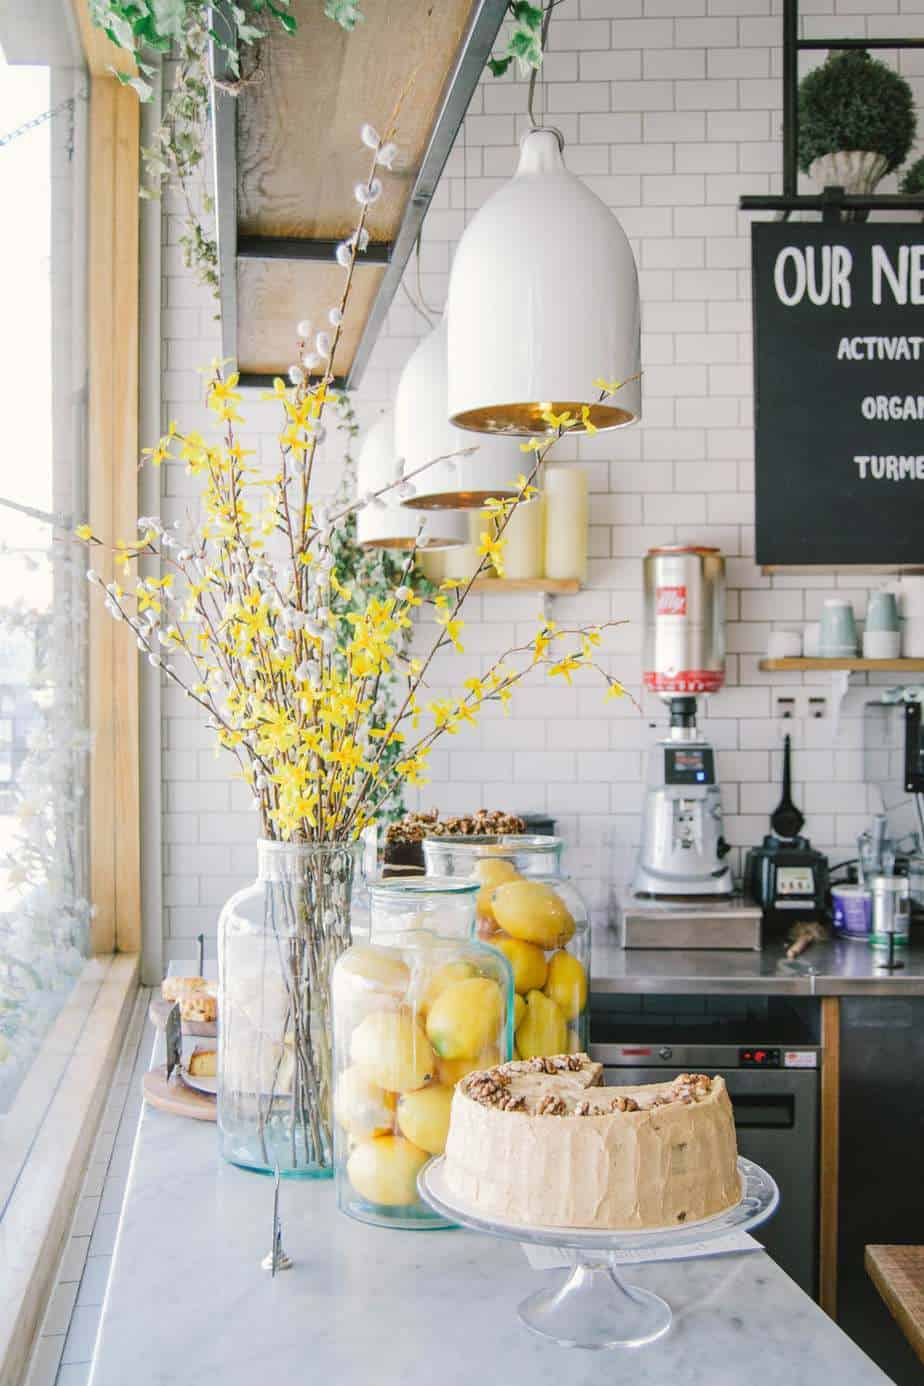 The white kitchen counter with a clear glass vase filled with yellow flowers and a cake on a stand with a piece taken out of it.